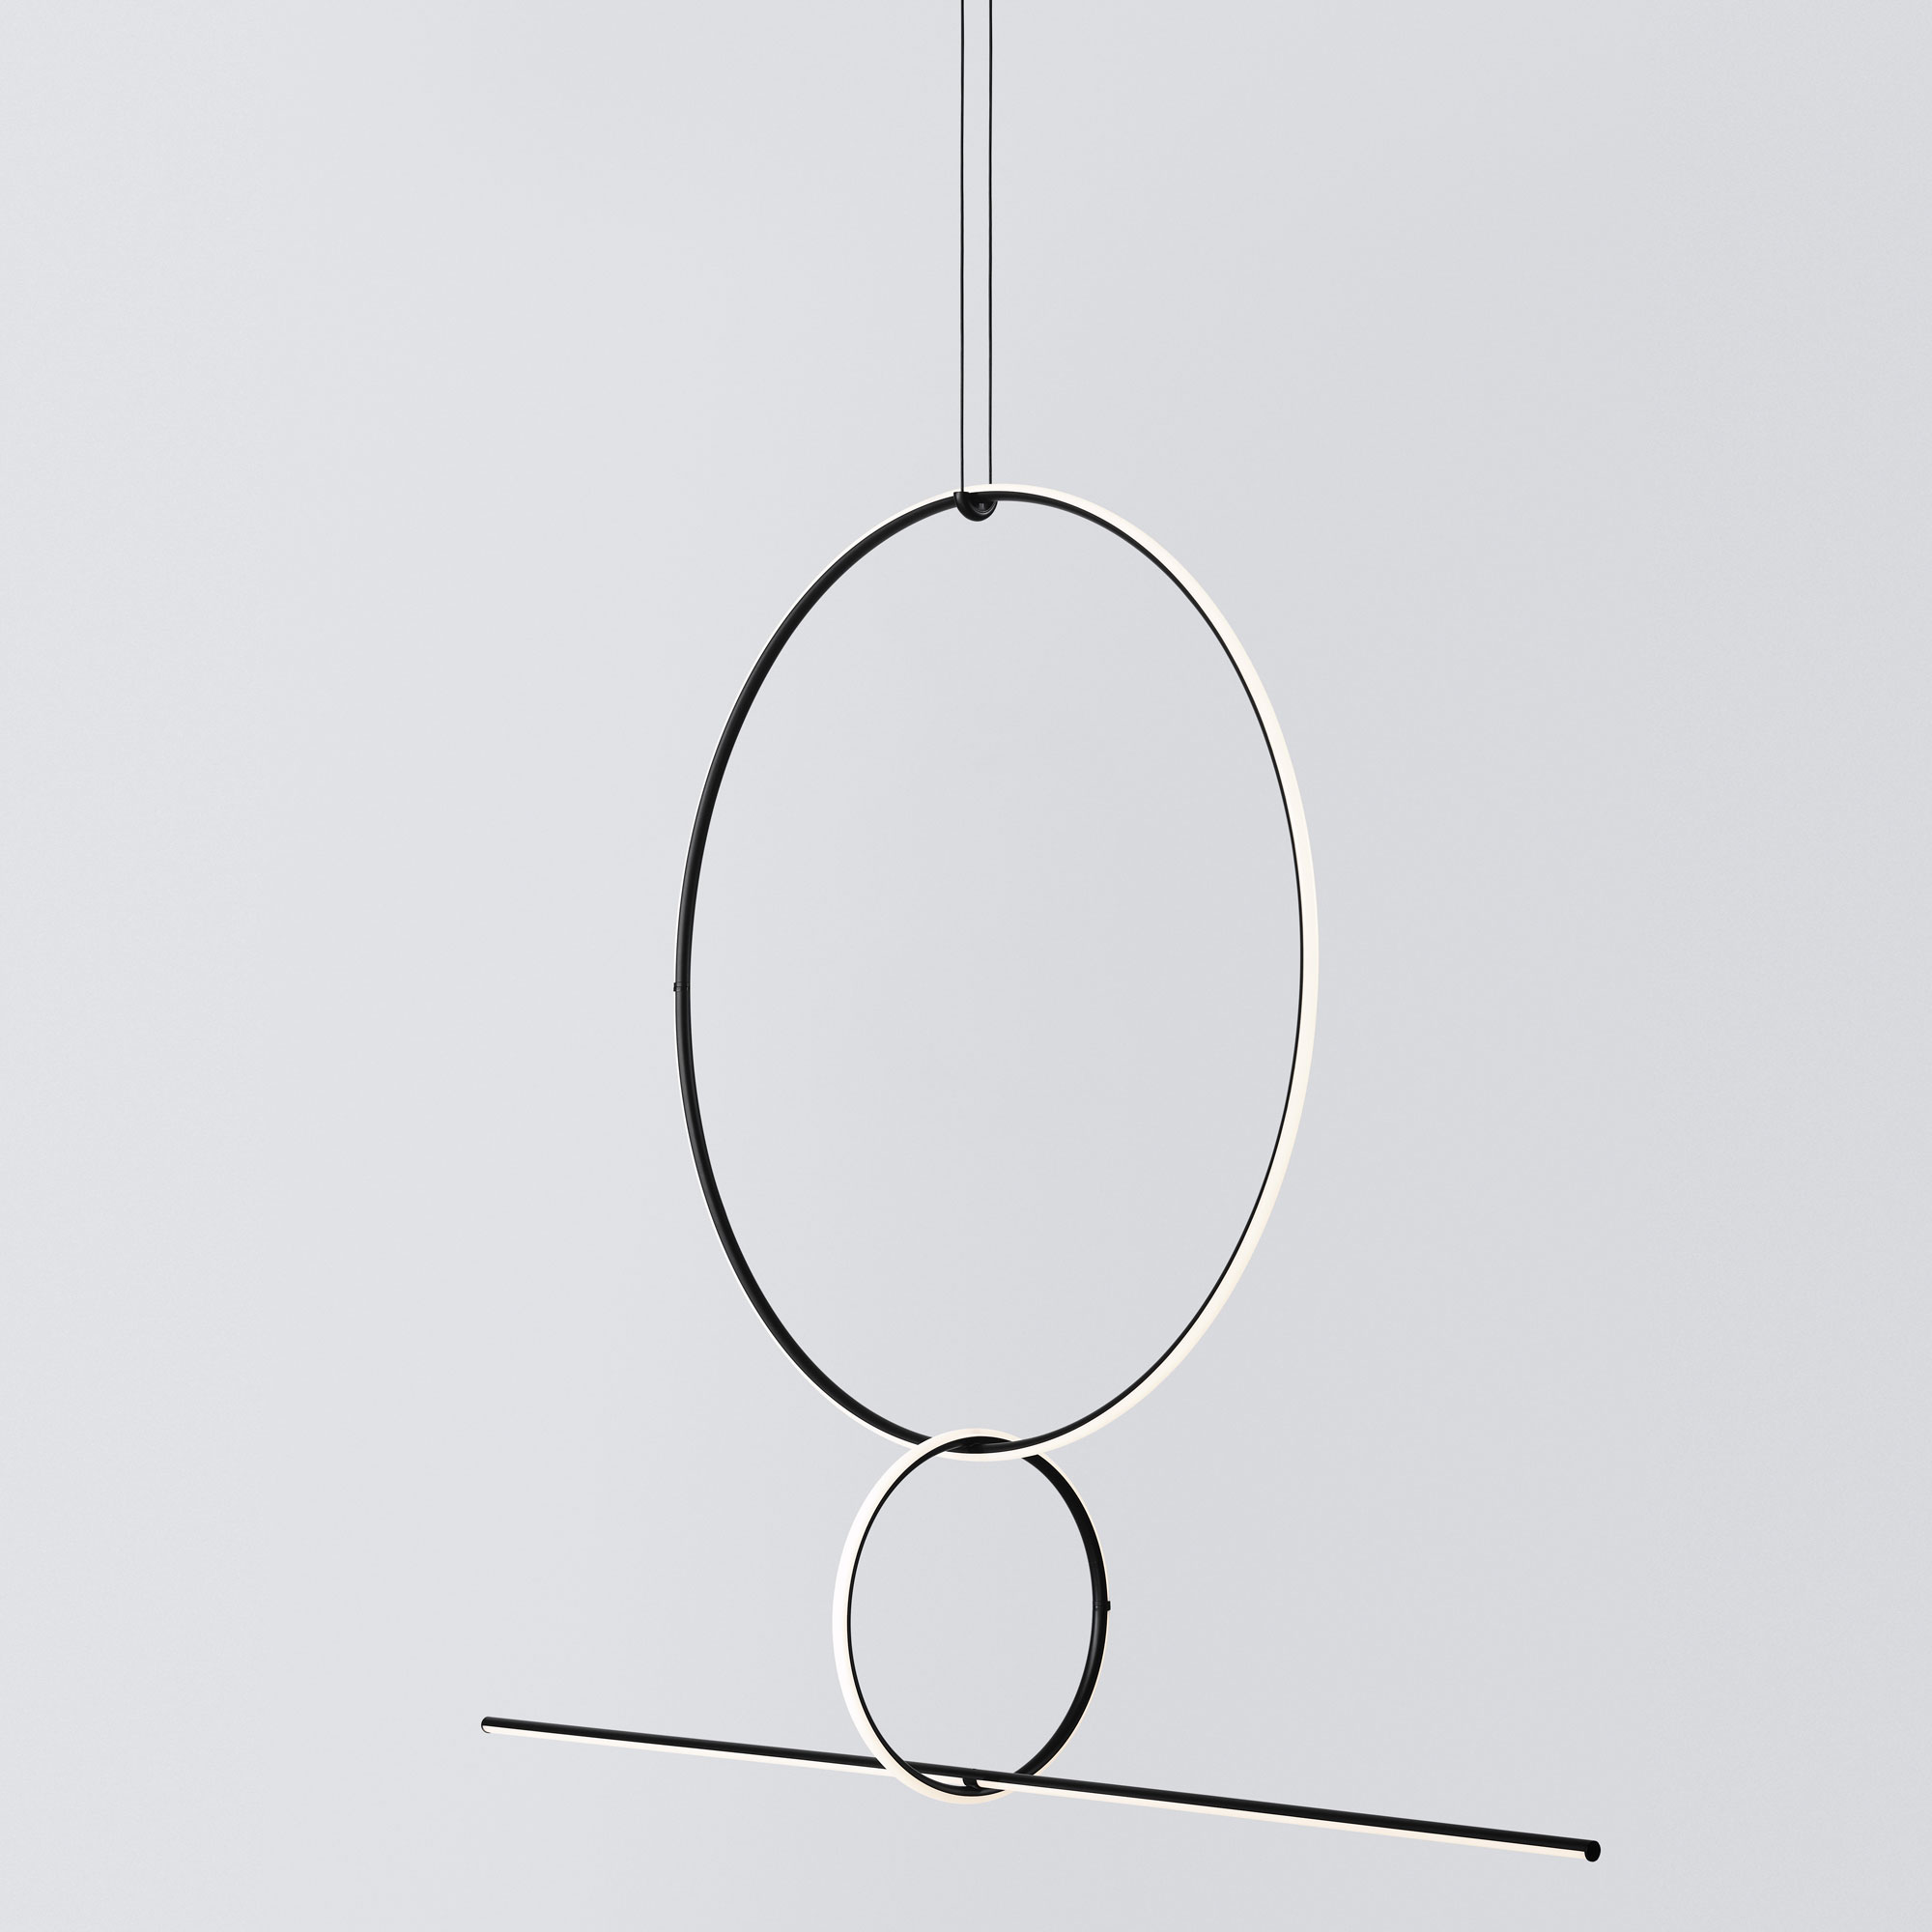 Arrangements Round Large Three Element Suspension By Flos Lighting Lc Arrnge Rdlg Rdsm Line